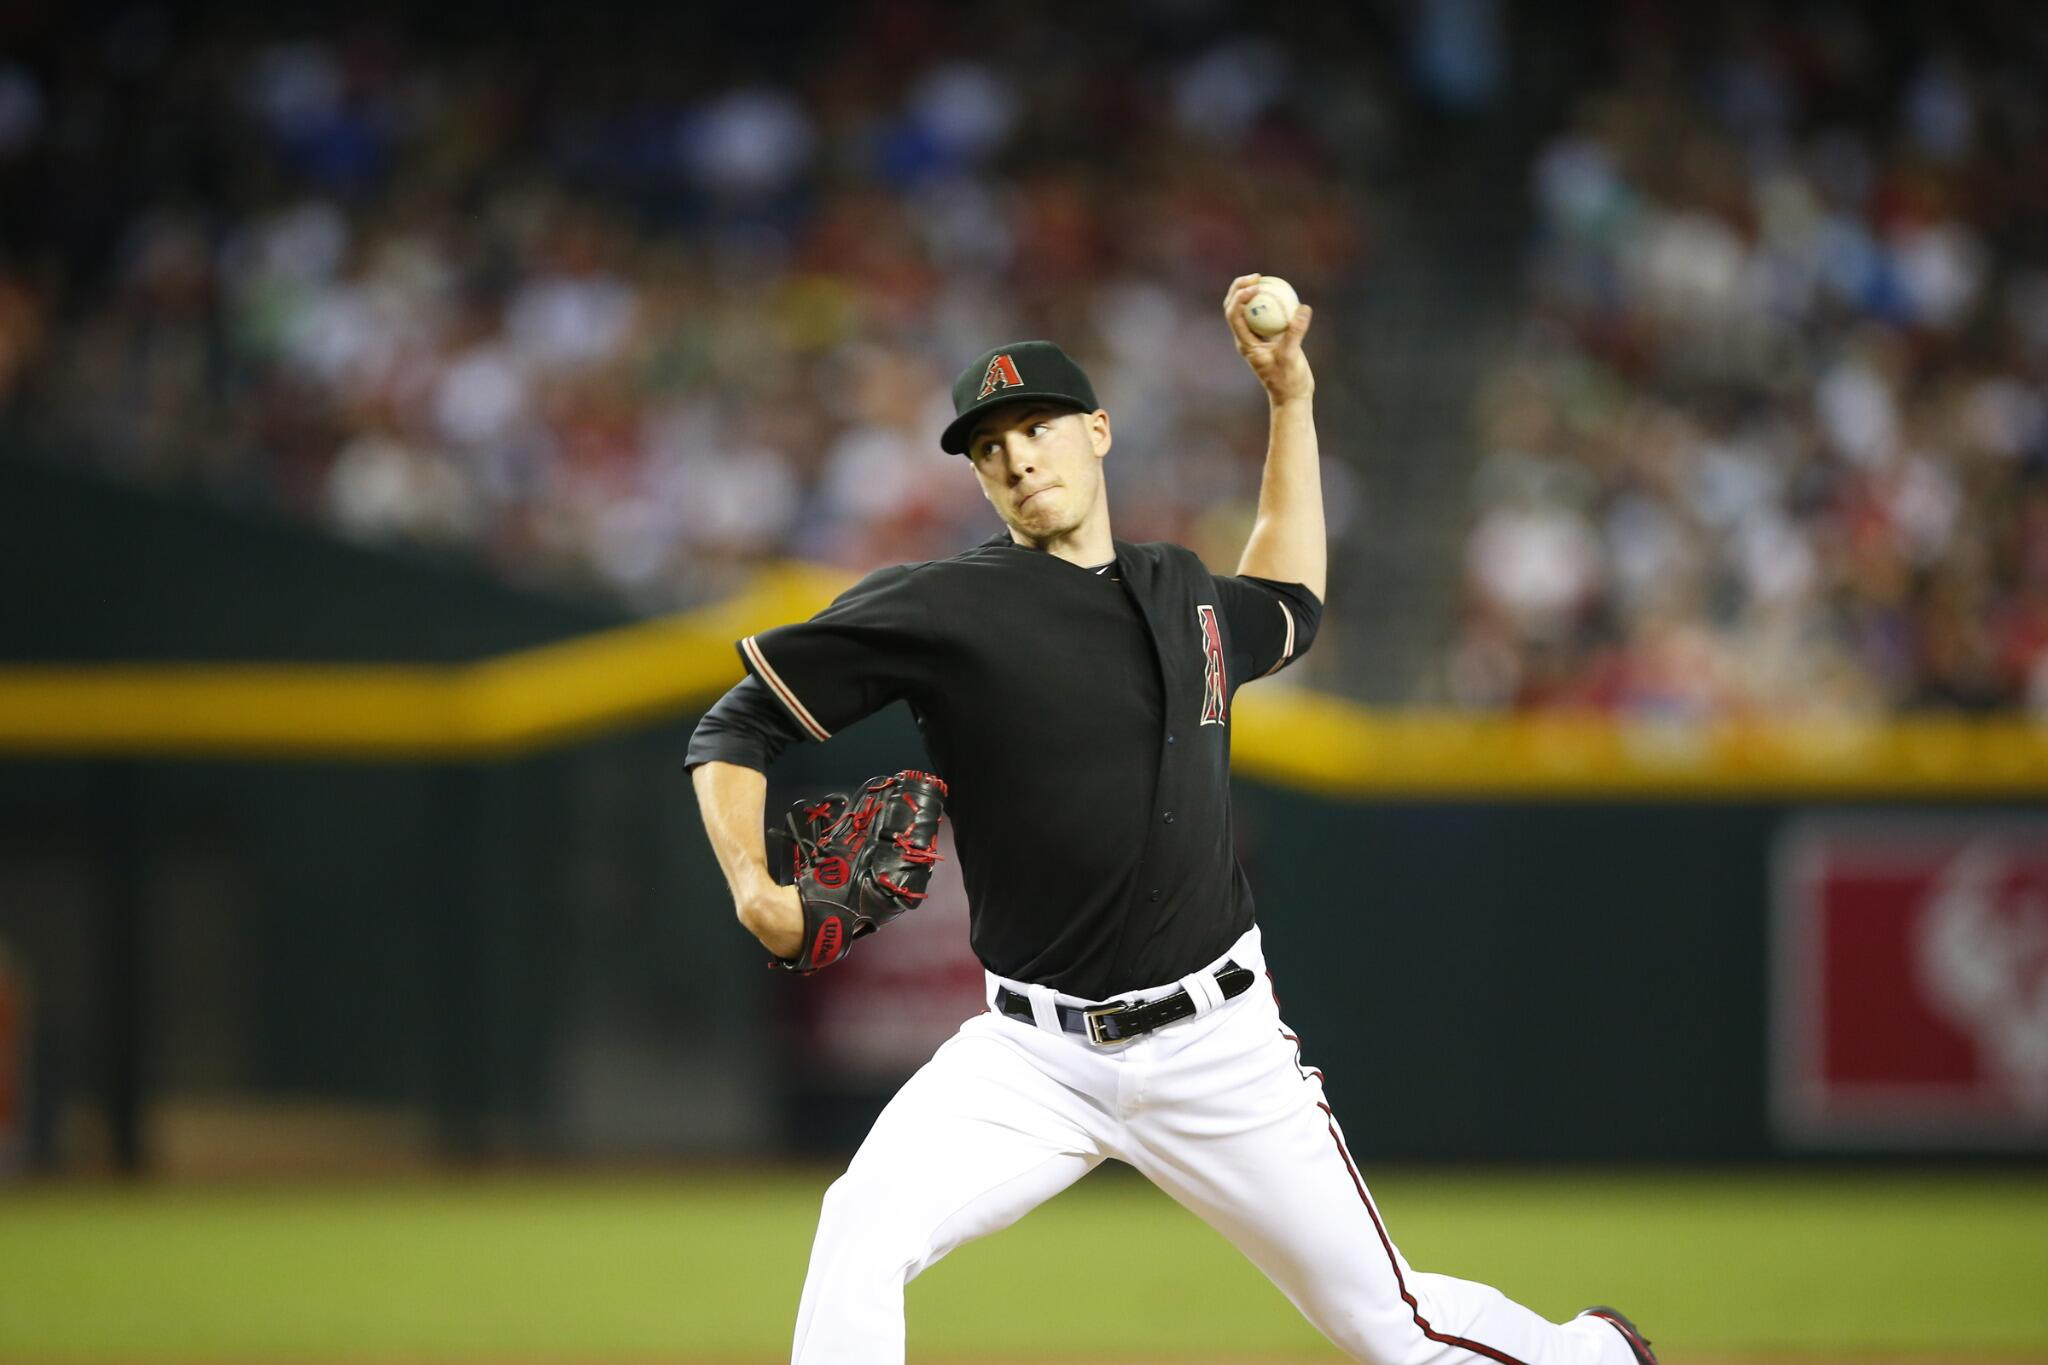 #Dbacks pitcher @PatrickCorbin11 has been selected to the 2013 NL All-Star team. #iBackCorbin http://t.co/upVToOafpW